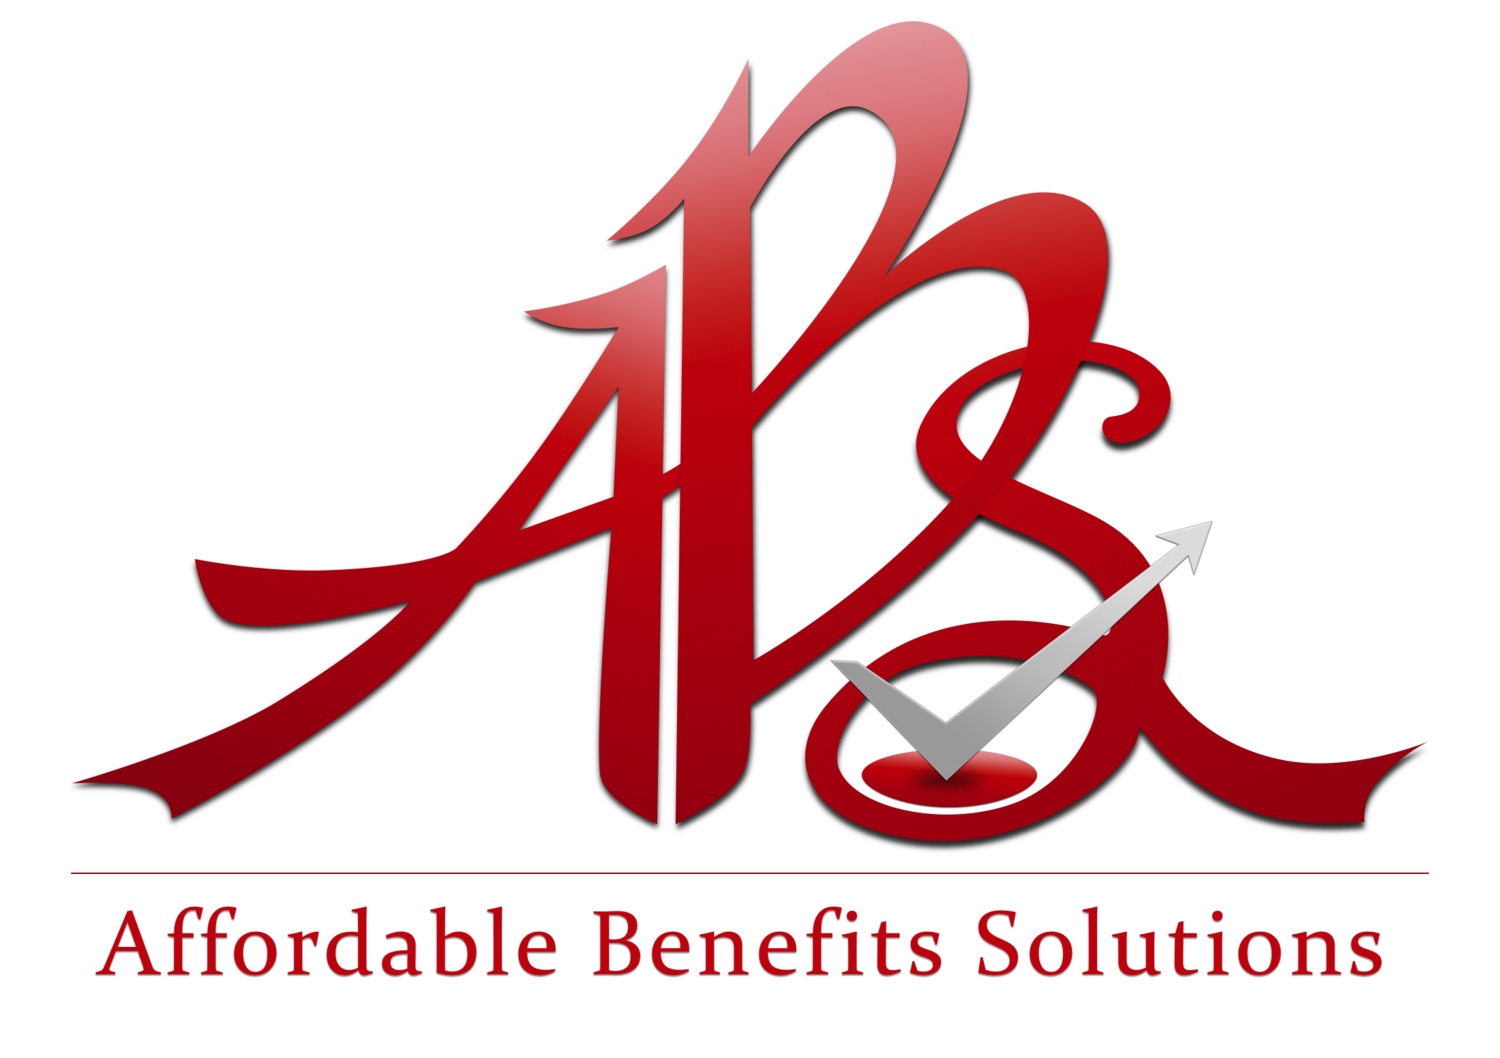 Affordable Benfits Solution - Employee Benefit Consulting and Group Insurance Brokerage. Design Company benefit programs